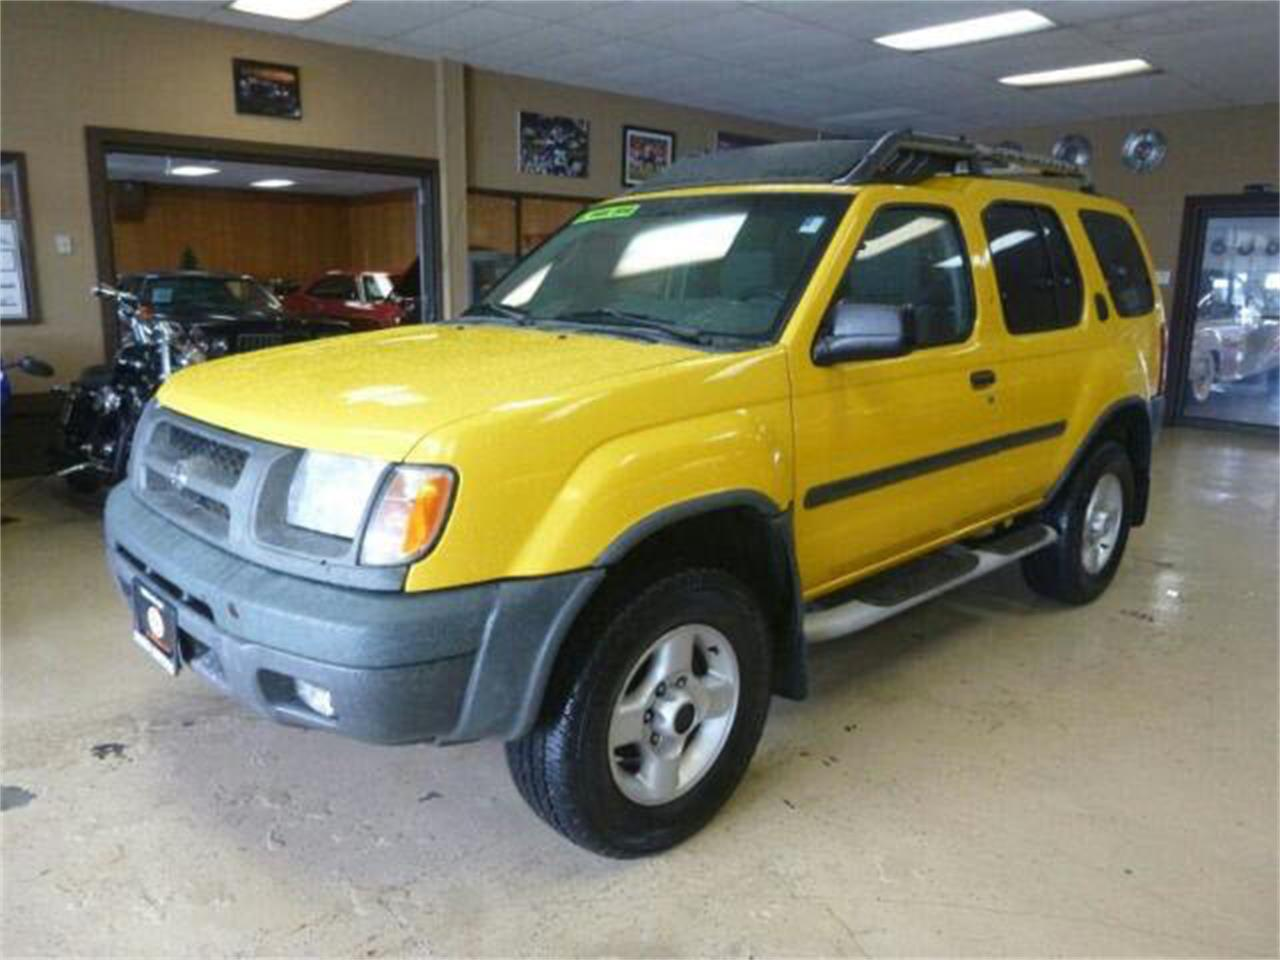 Large Picture of '01 Nissan Xterra located in Washington - $5,990.00 - M5QD